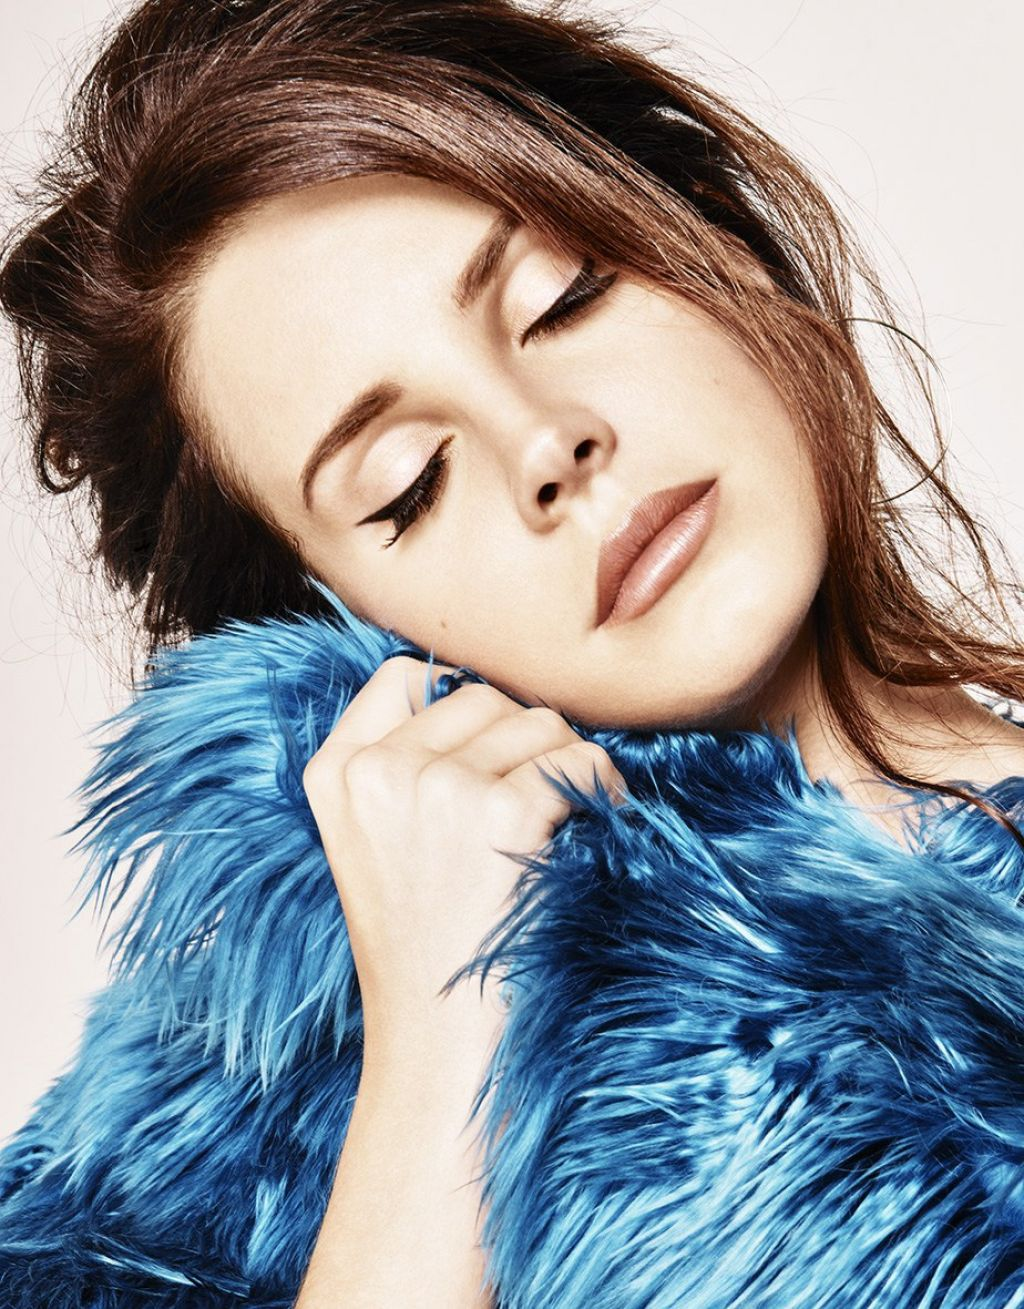 Lana Del Rey - Photoshoot for Grazia Magazine (France) December 2014